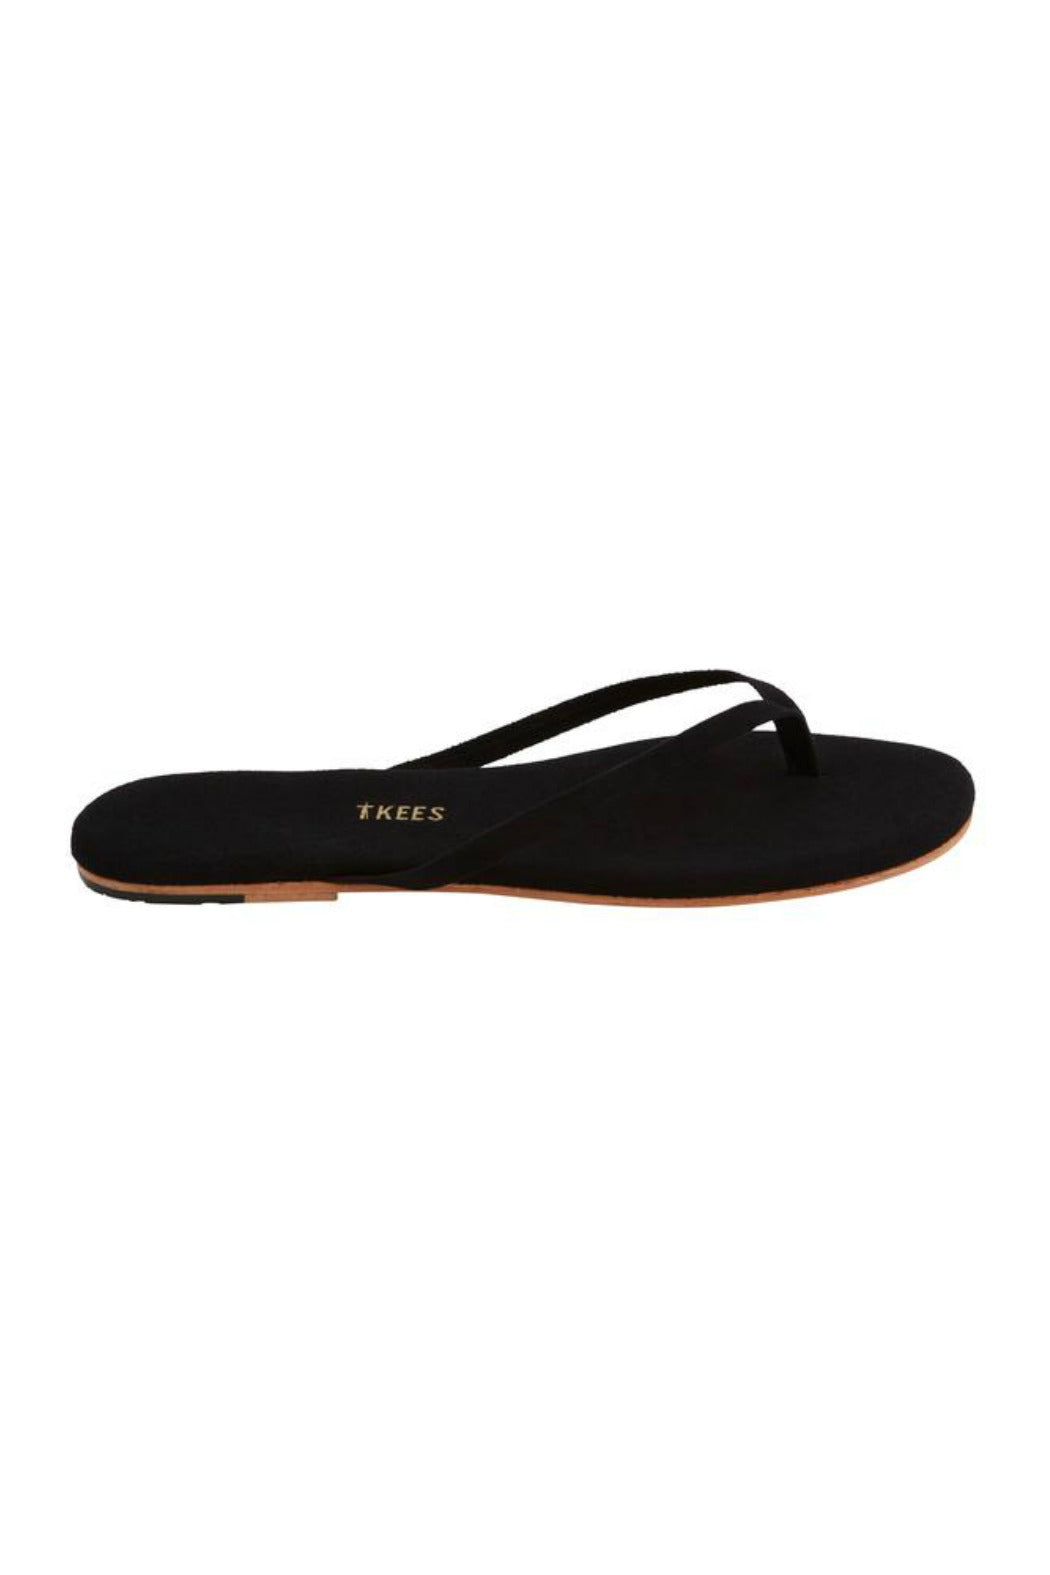 """TKEES"", Suede Licorice Root Flip Flops"